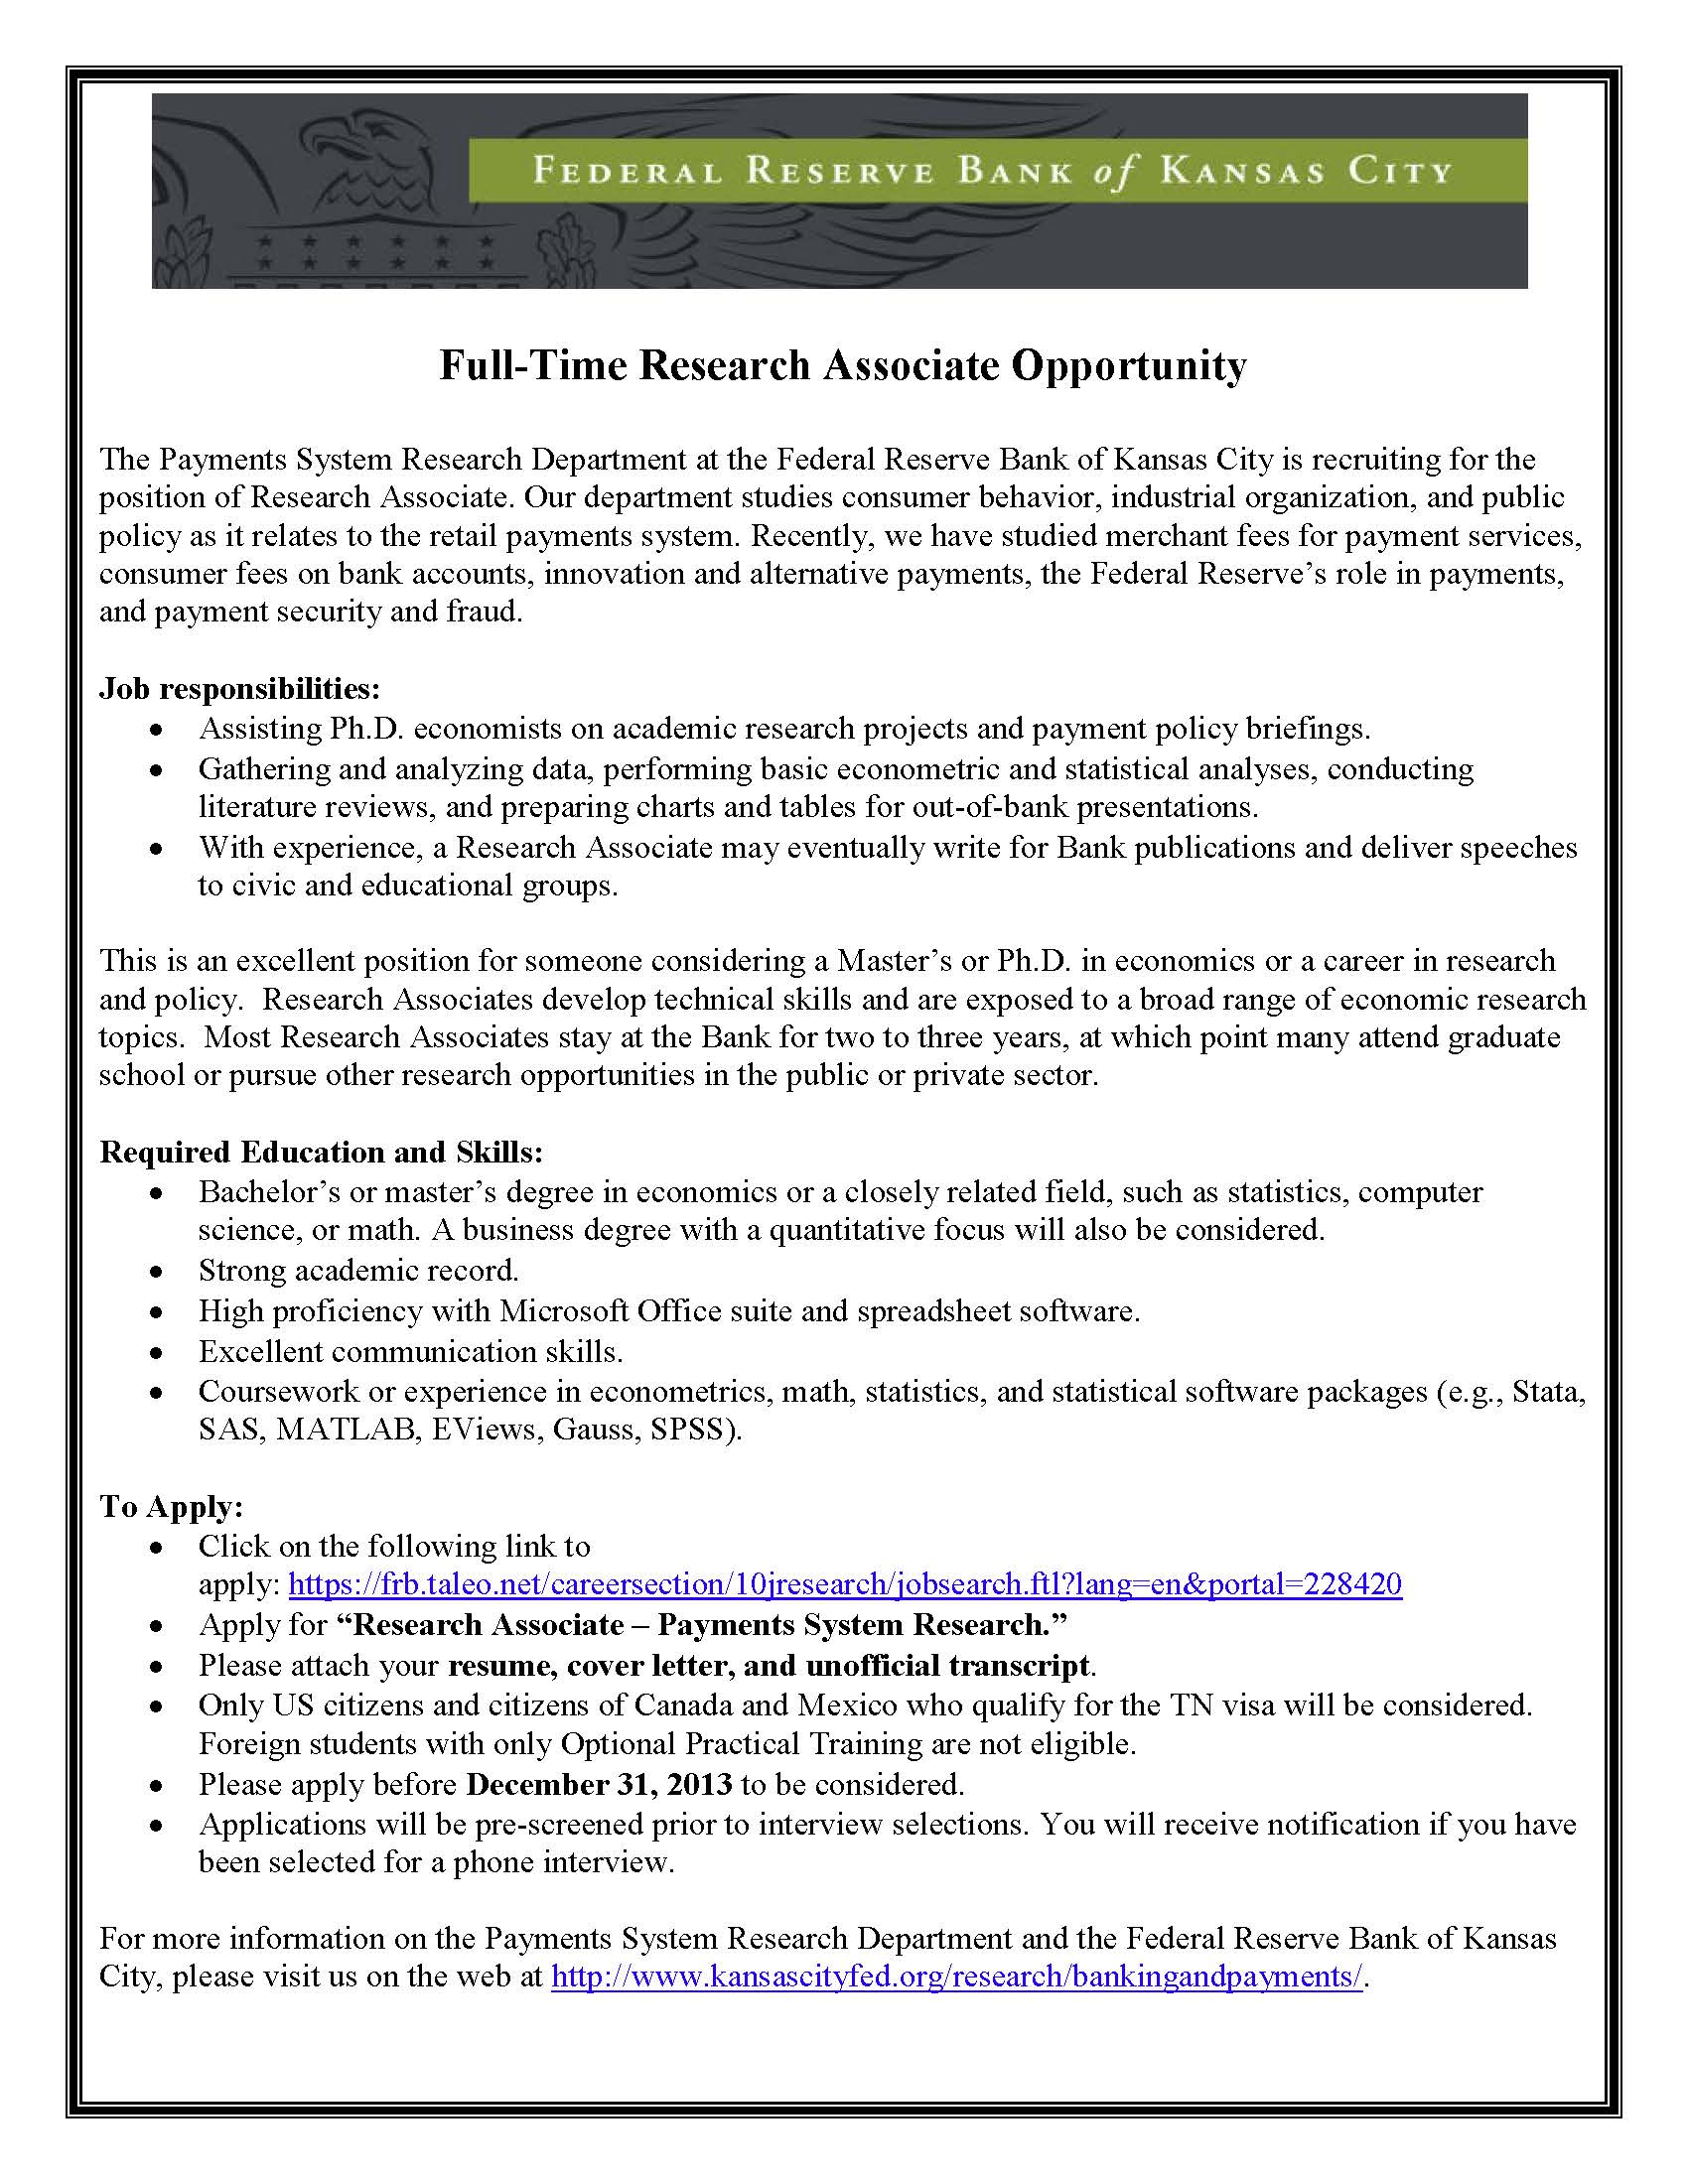 Research Associate Opportunity – Federal Reserve Bank of Kansas City ...